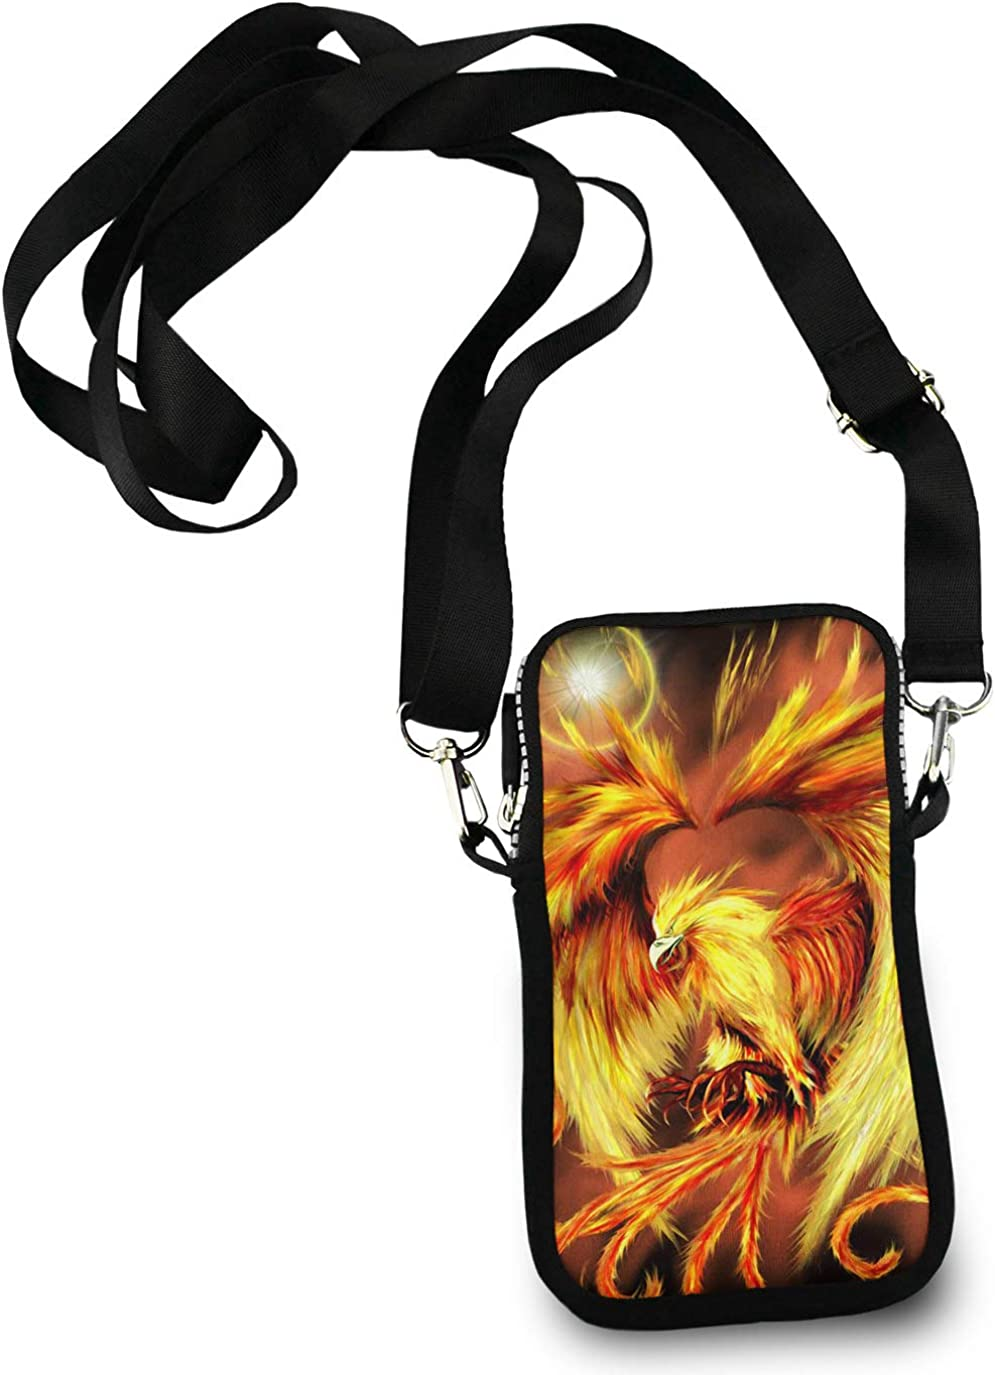 Casual Security Pack Crossbody Phone Pouch With Shoulder Strap Wallet Handbag fire flame Phoenix bird